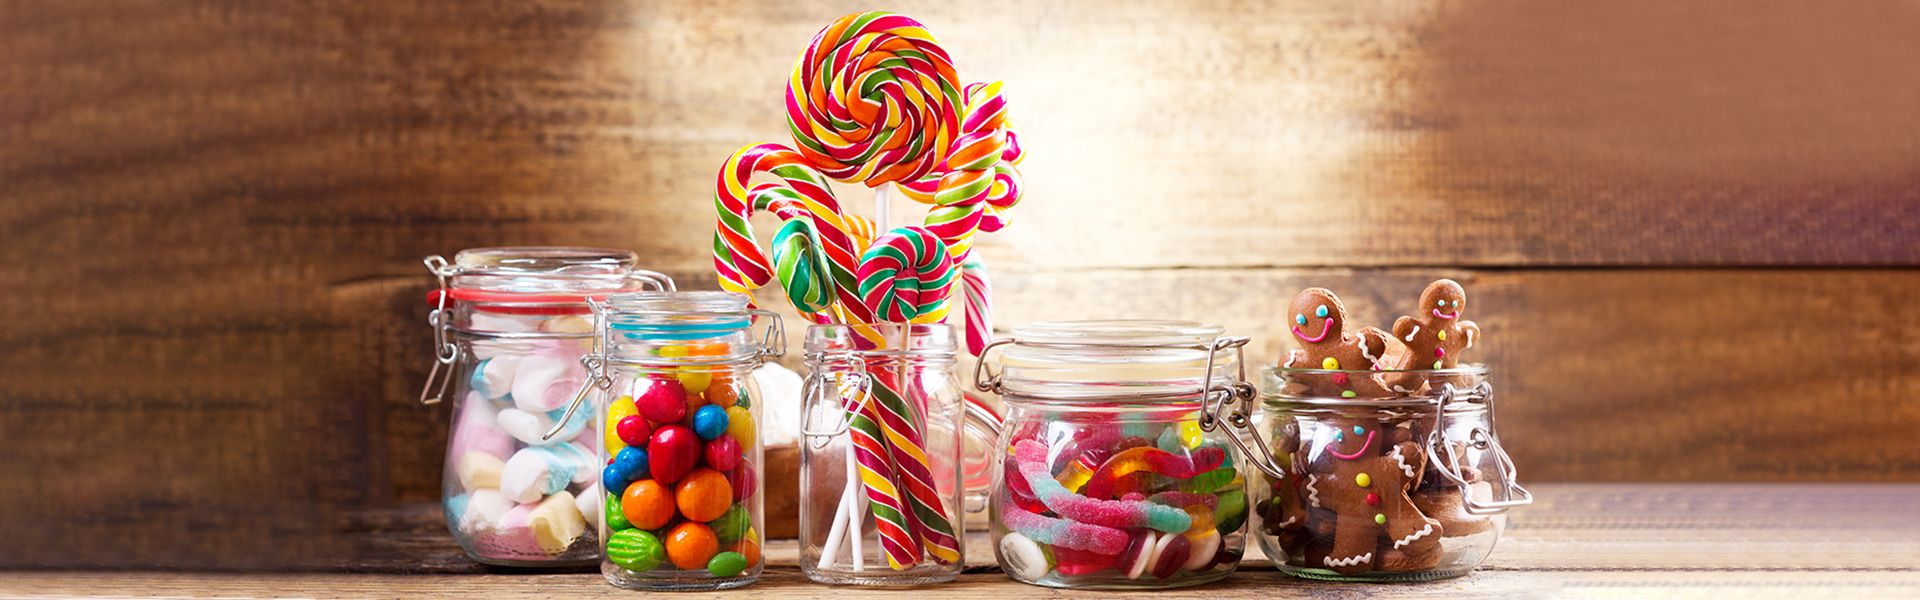 For The Love Of Candy; What�s In Store This Holiday Season?